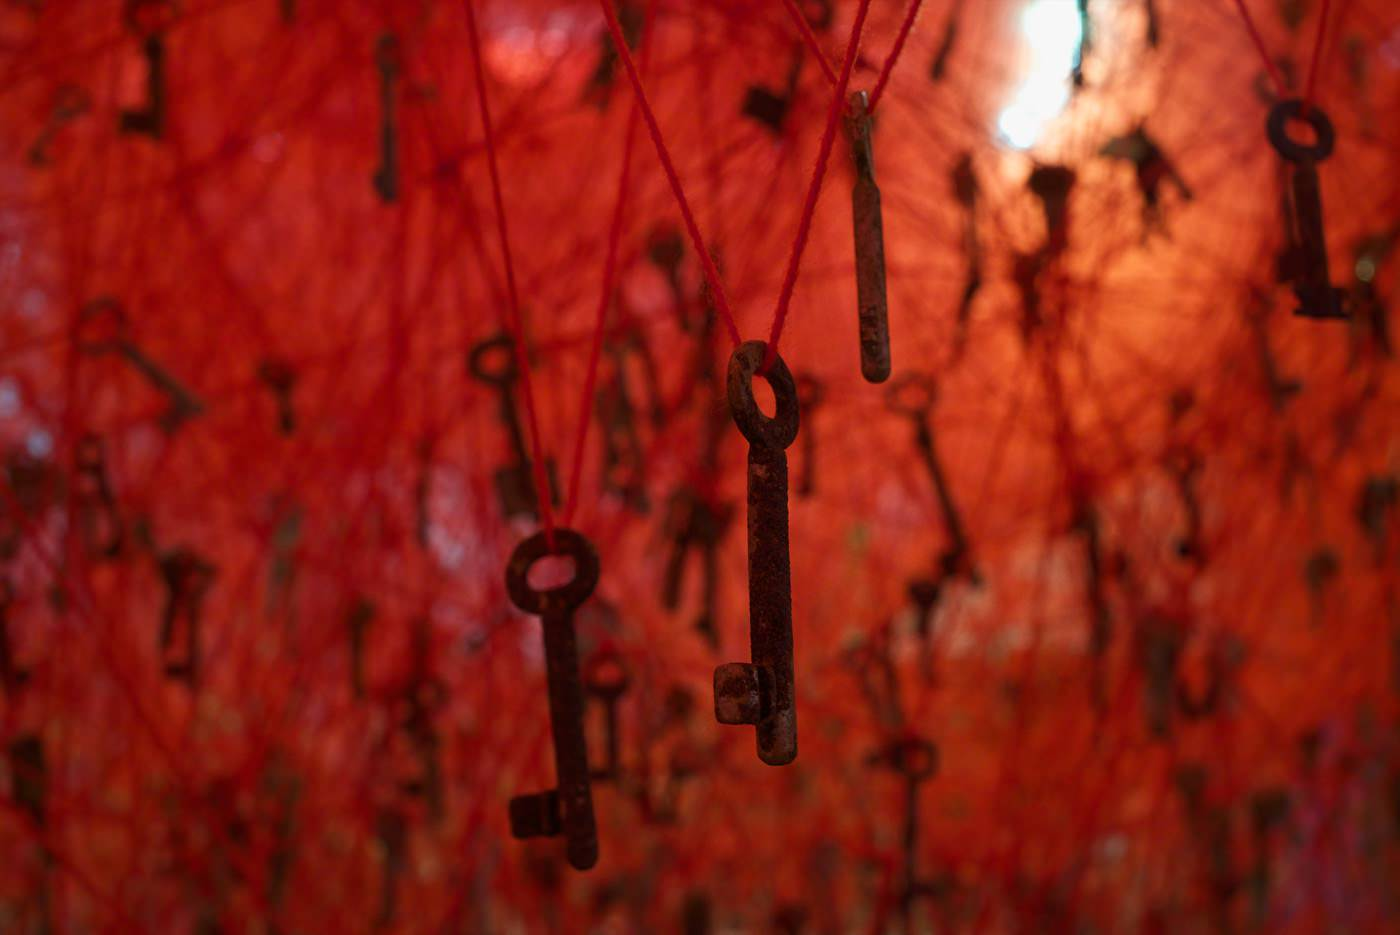 """The Key in the Hand"", 2015, Old keys, old wooden boats, red wool, Venice, Italy, photo by Sunhi Mang"